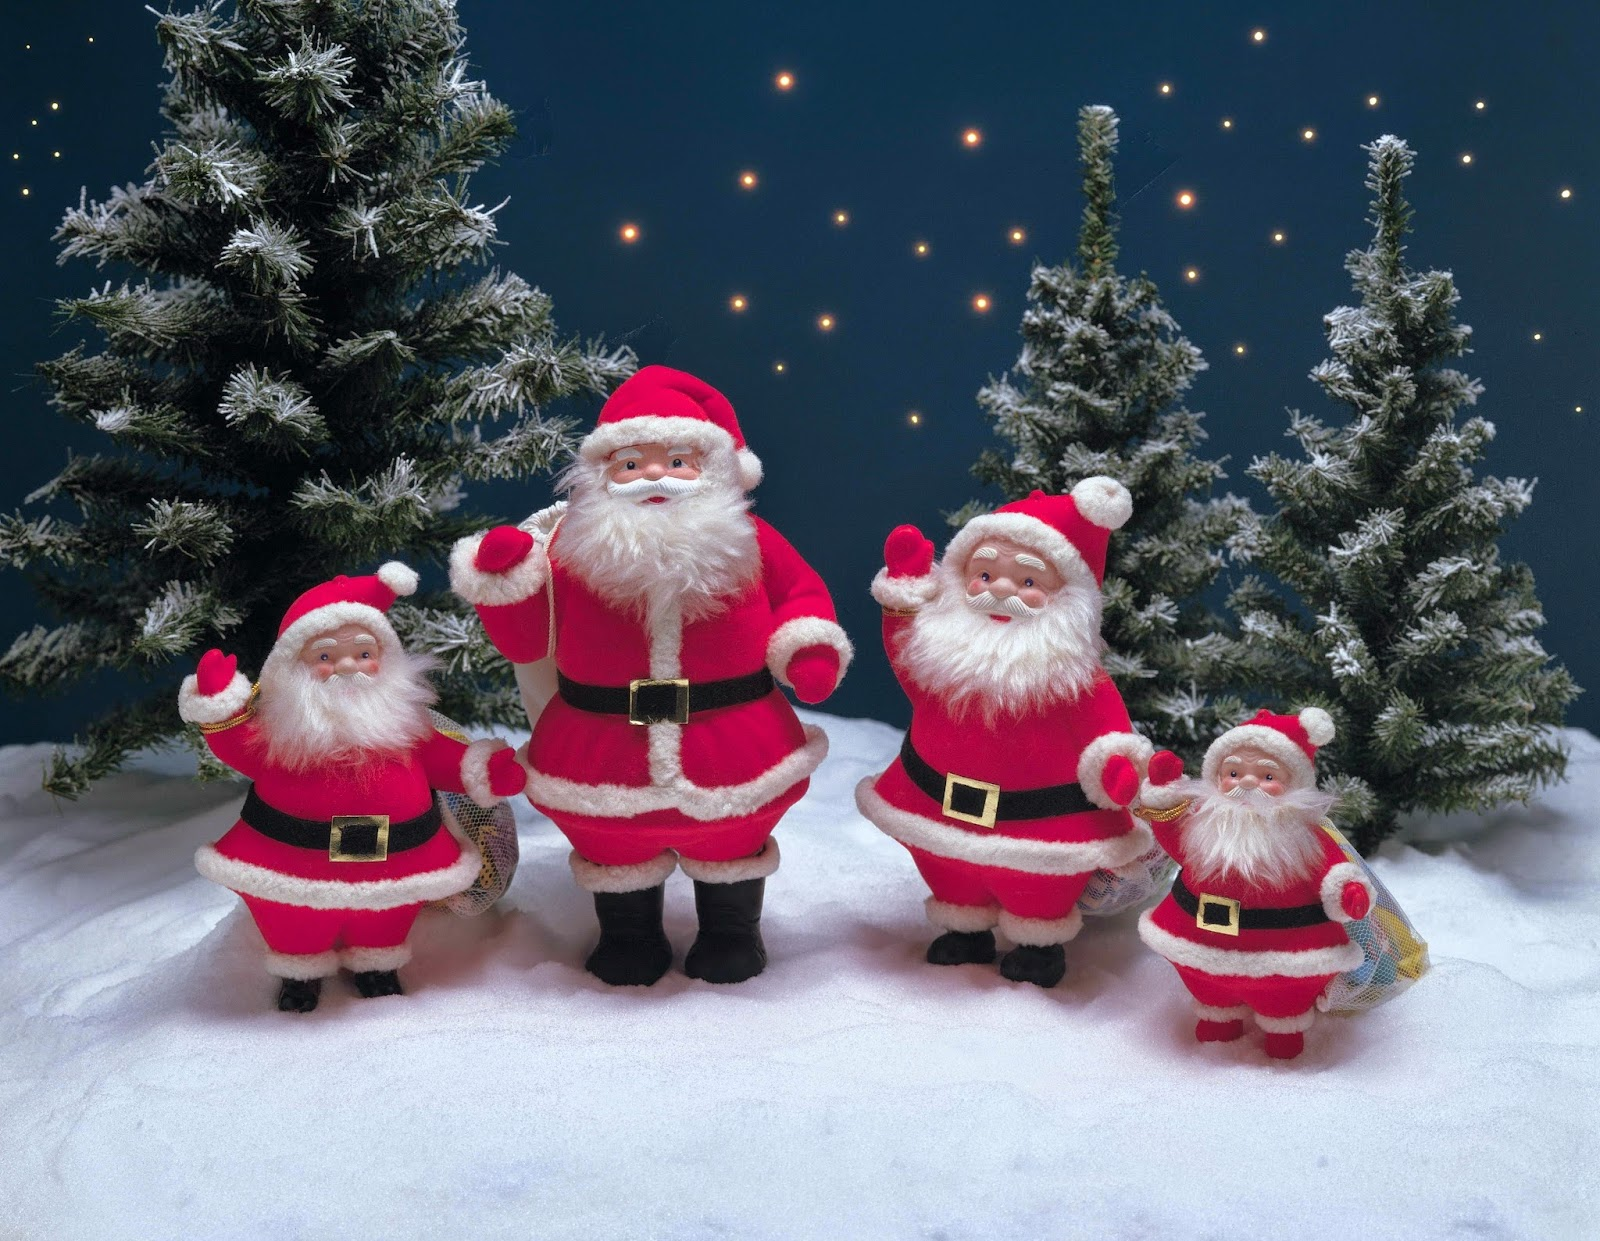 Santa-claus-dolls-for-home-decoration-images-free-download.jpg